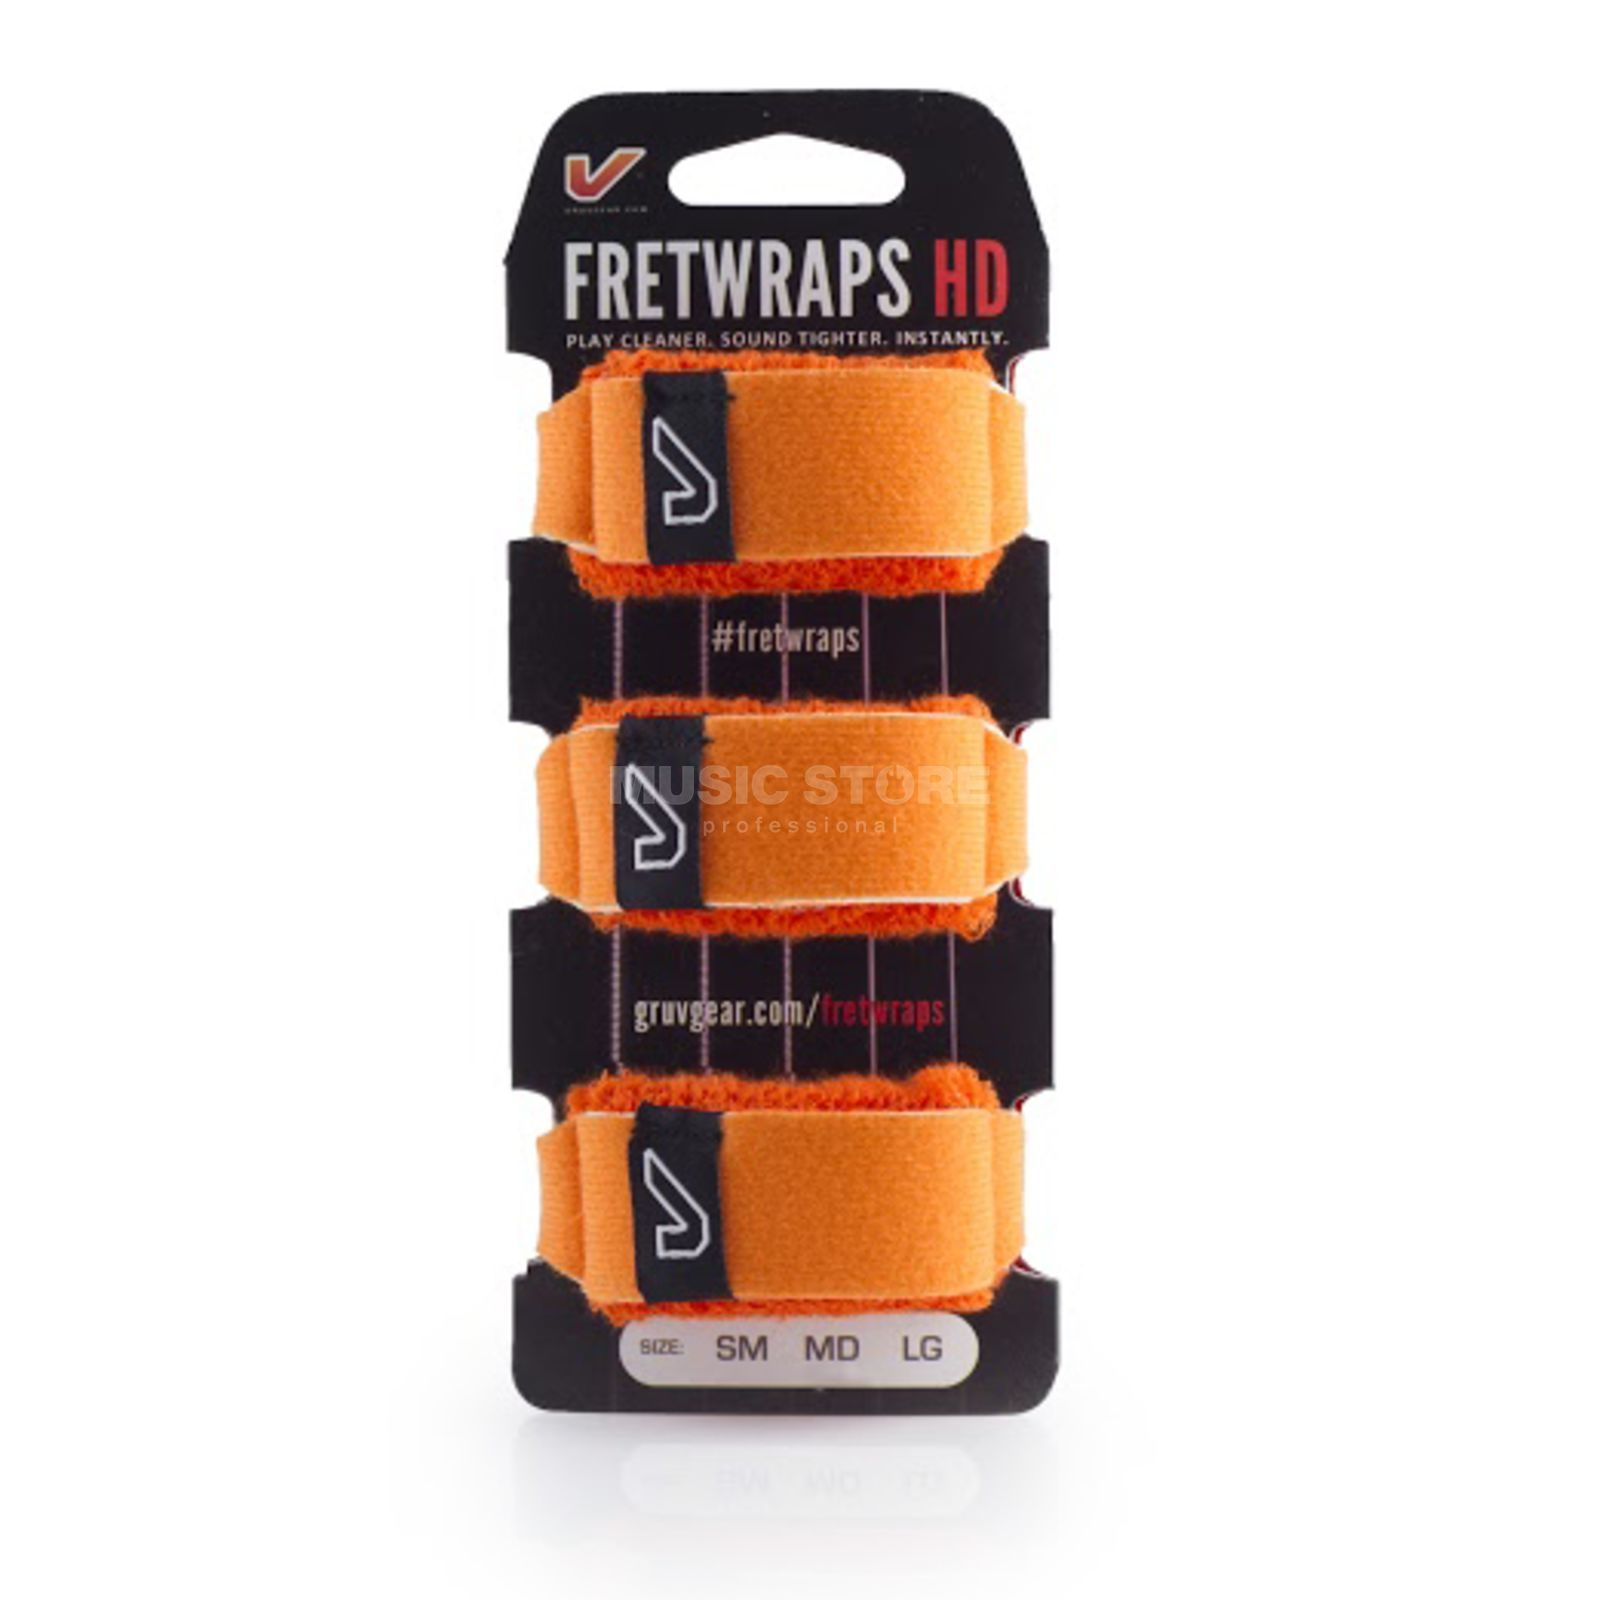 Gruv Gear Fret Wraps HD Flare Orange Large, 3er Pack Produktbillede